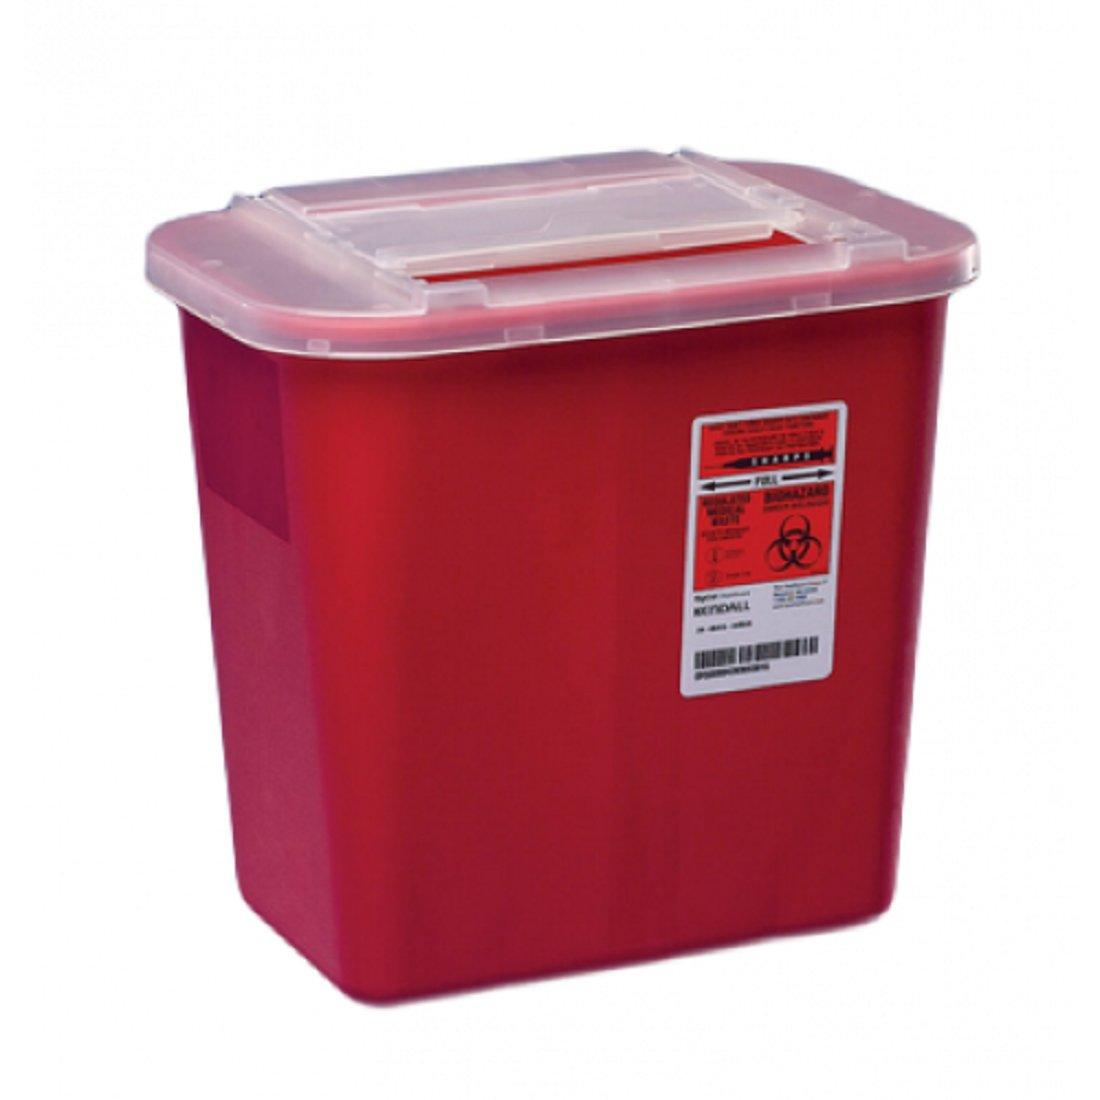 Kendall/Covidien Kendall Red 2 Gallon Sharps Container - Model 31142222 by Kendall/Covidien